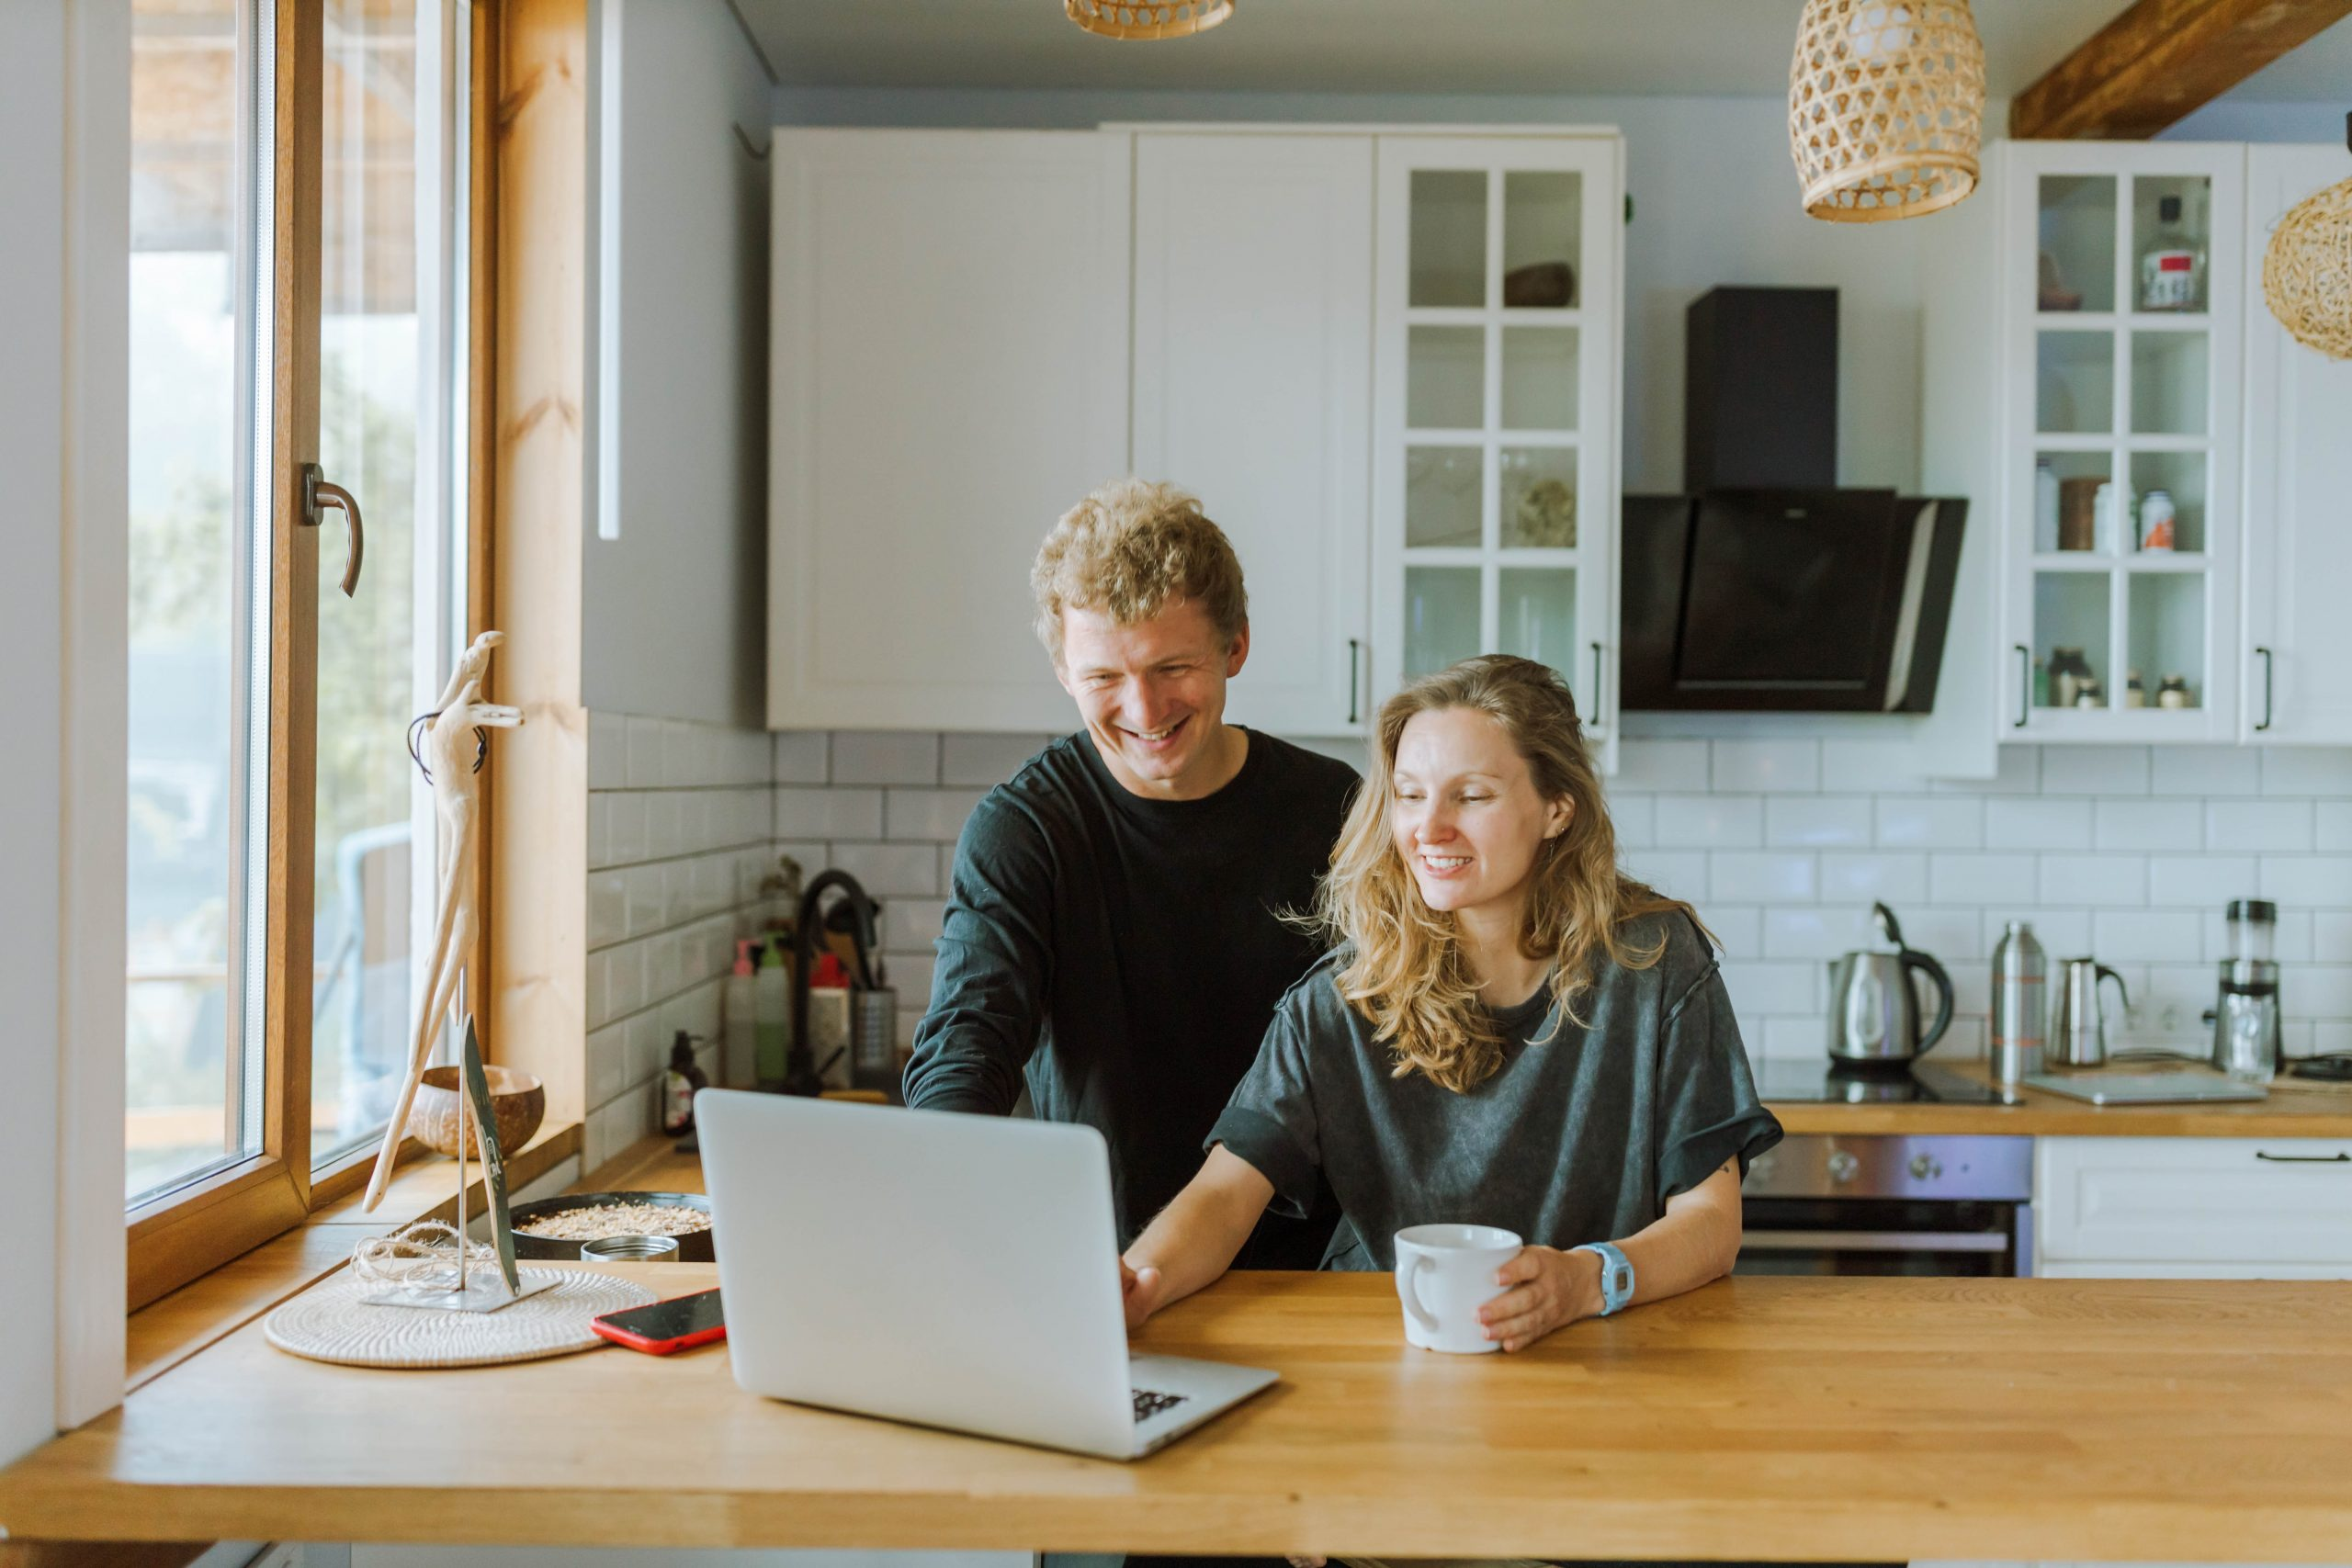 couple consulting laptop computer in their kitchen